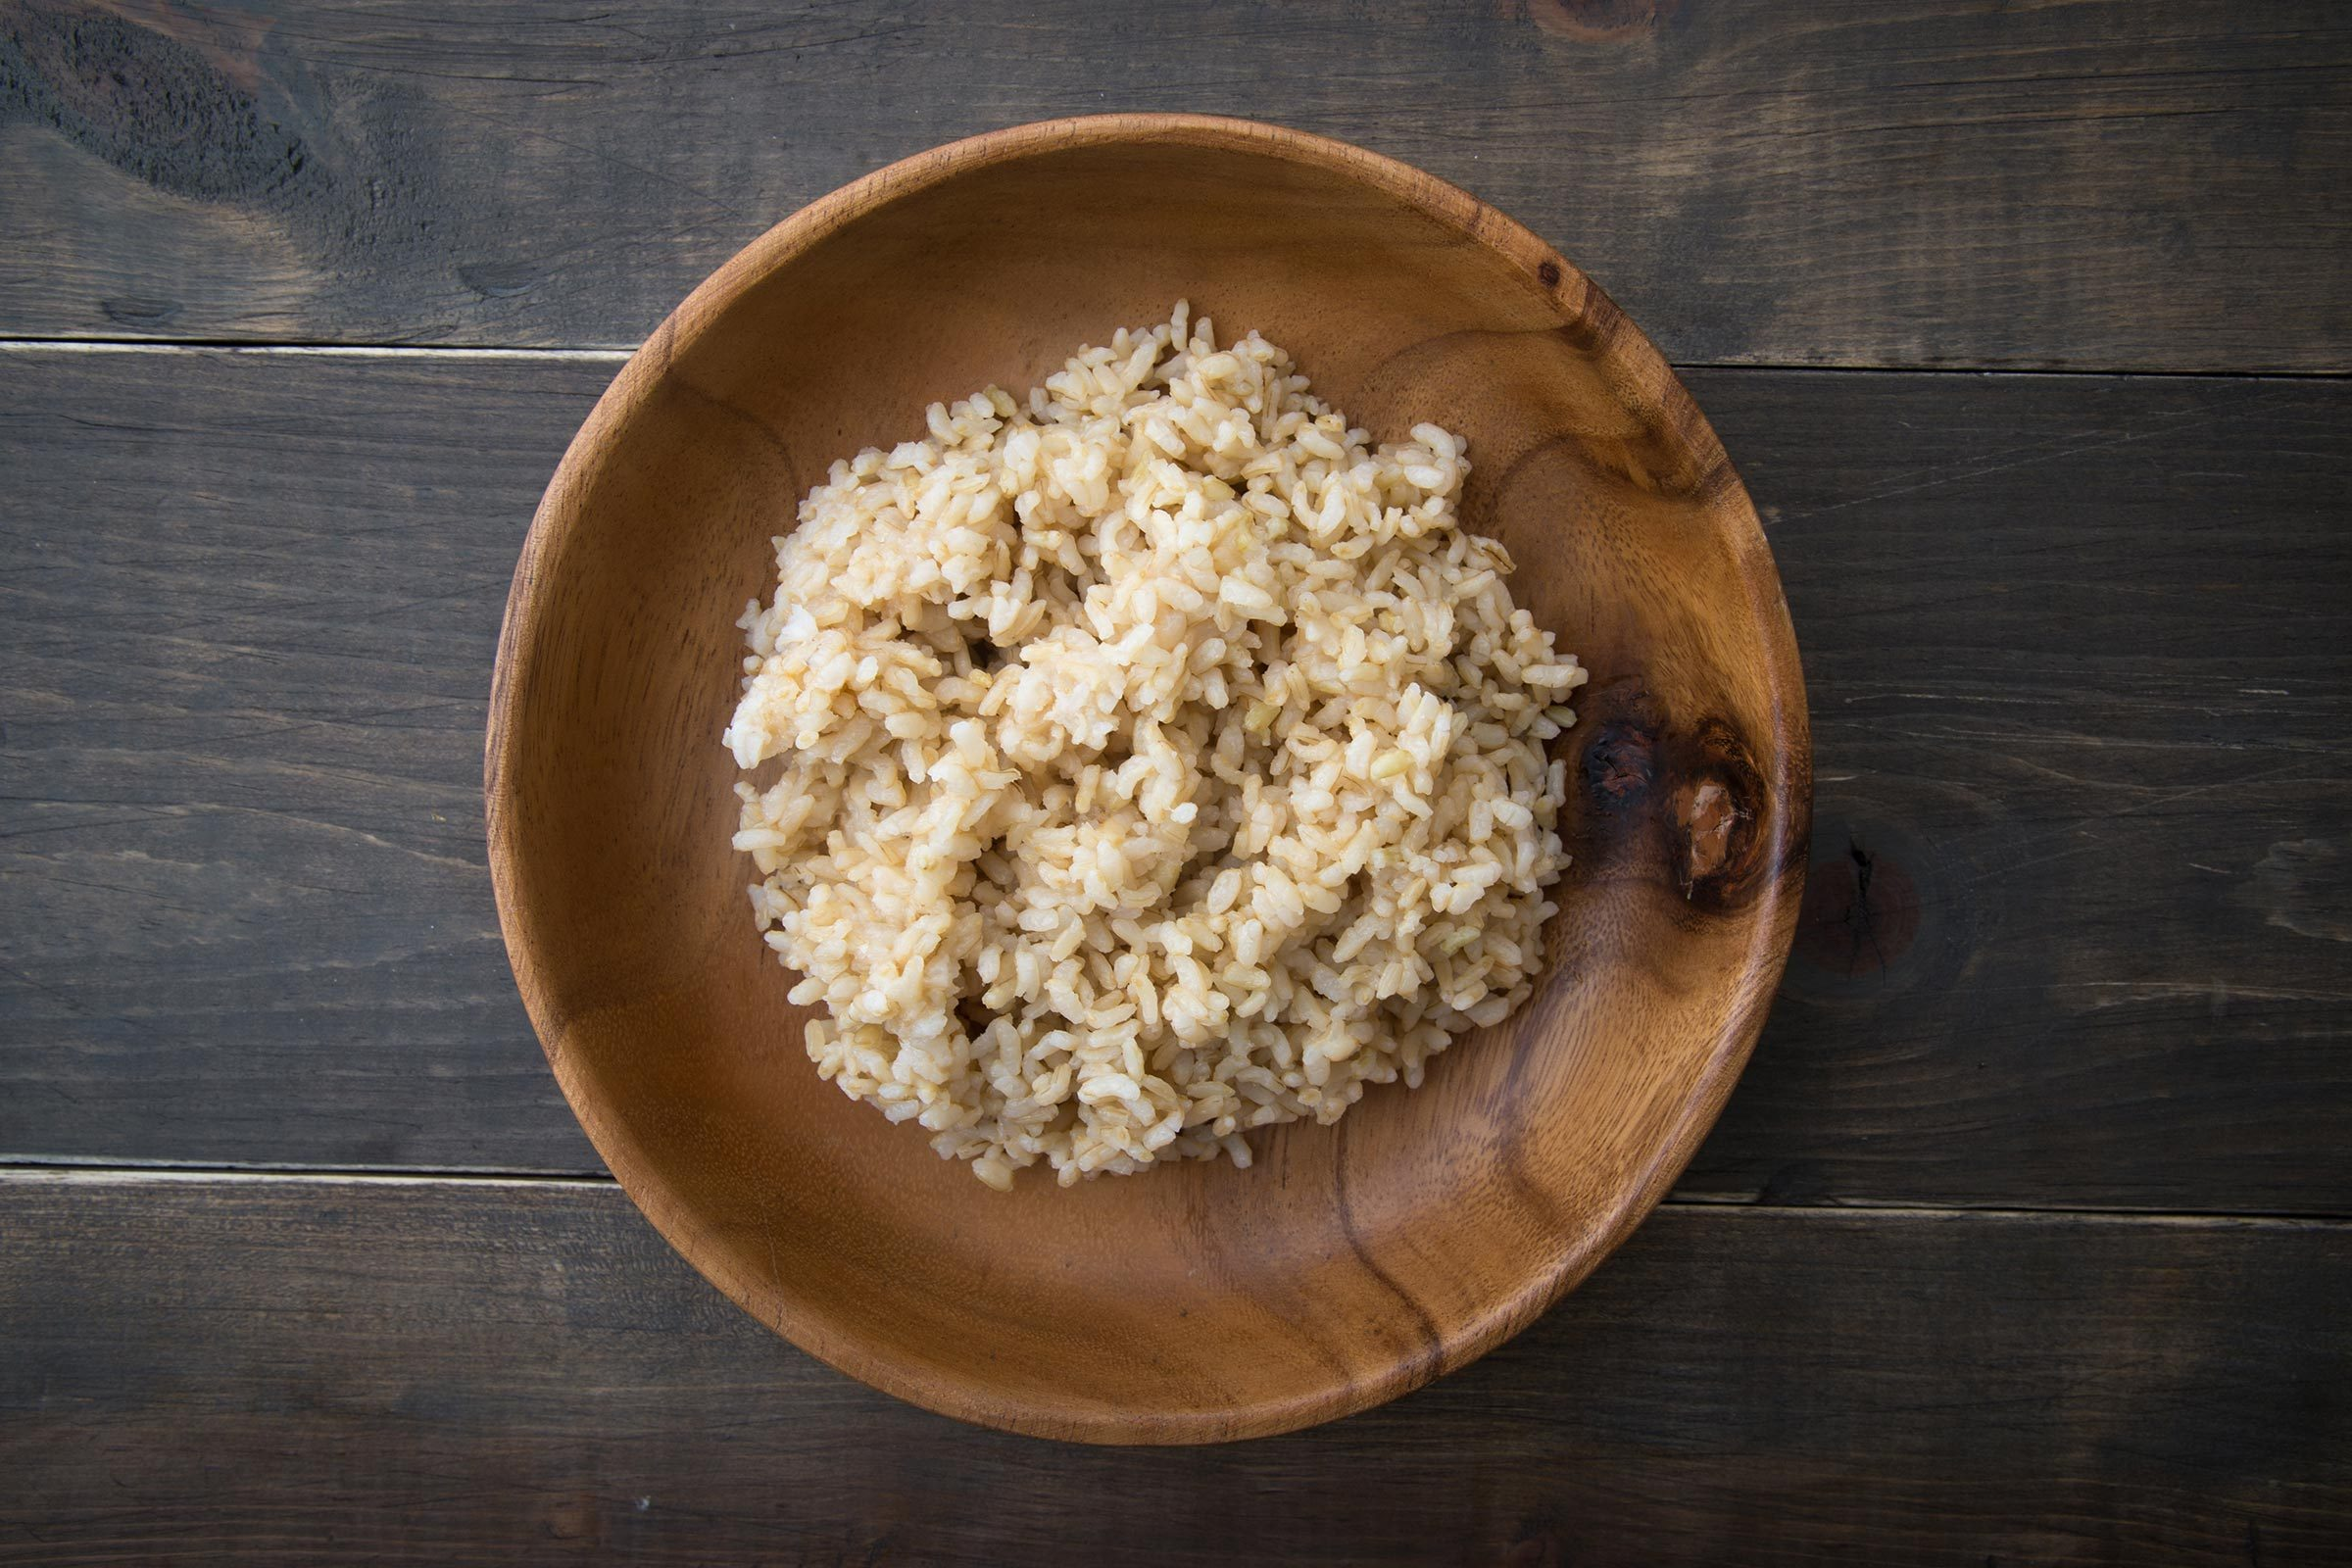 Wooden bowl of brown rice.